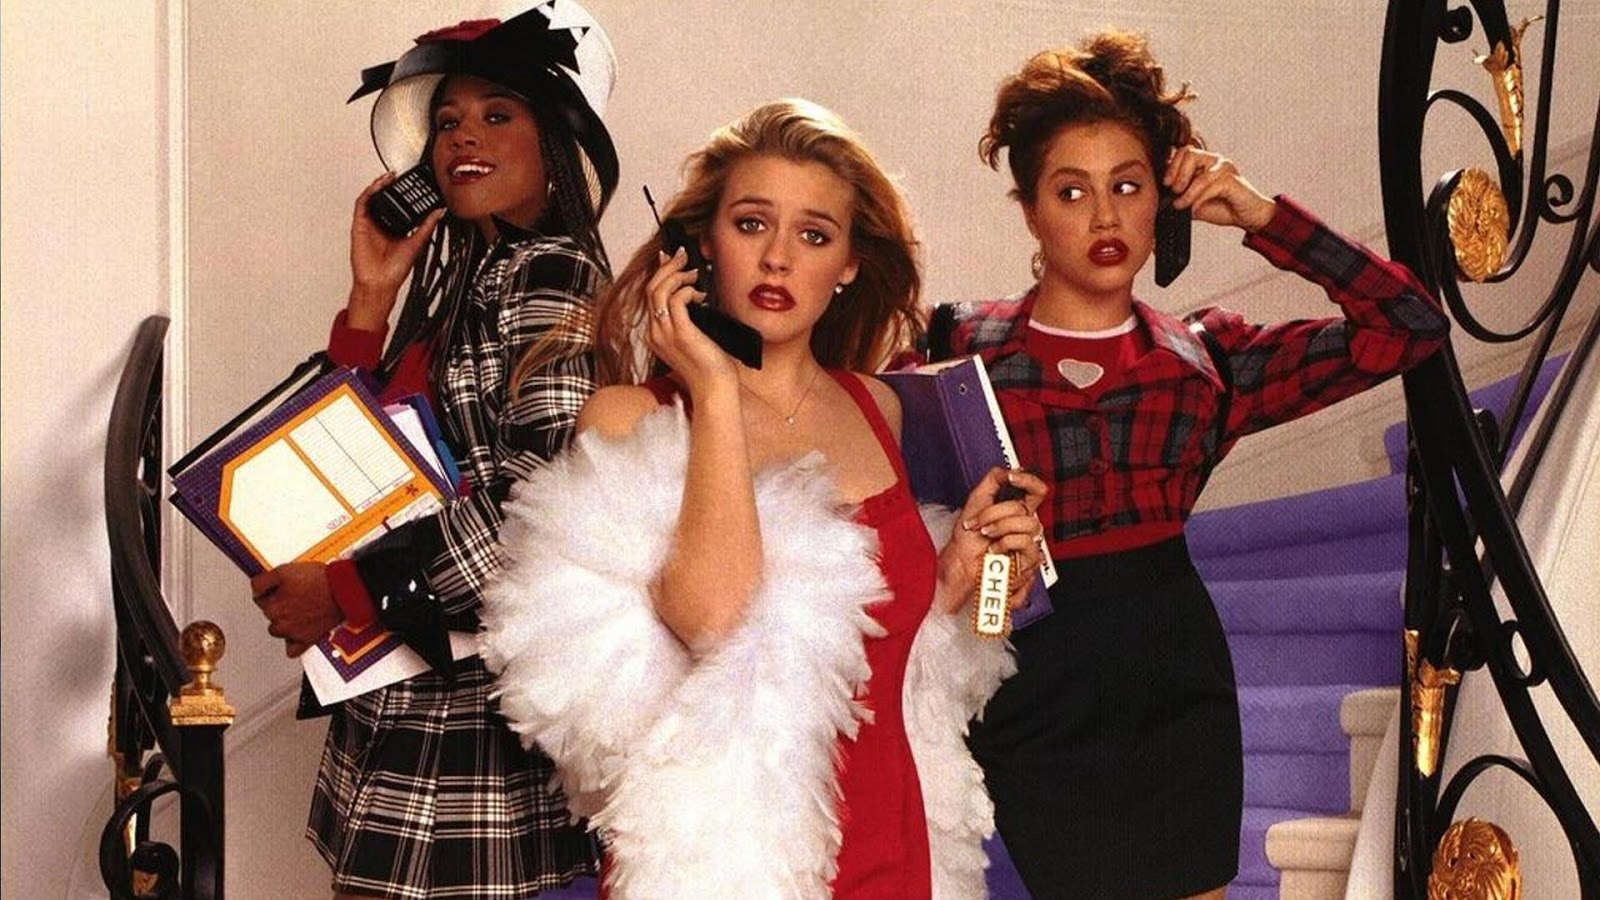 10 reasons growing up in the 90s was the bomb diggity